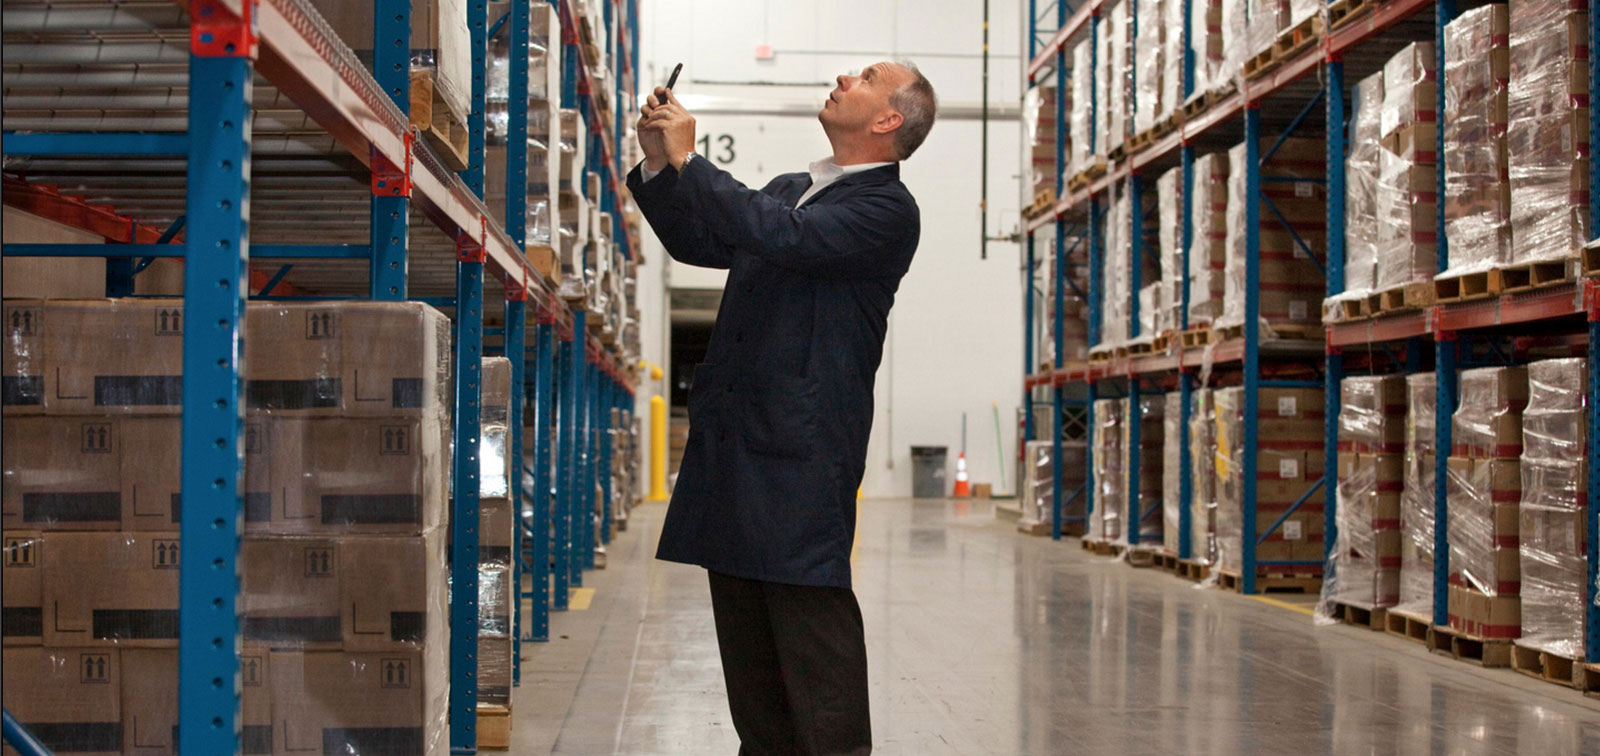 Business man taking picture in a warehouse